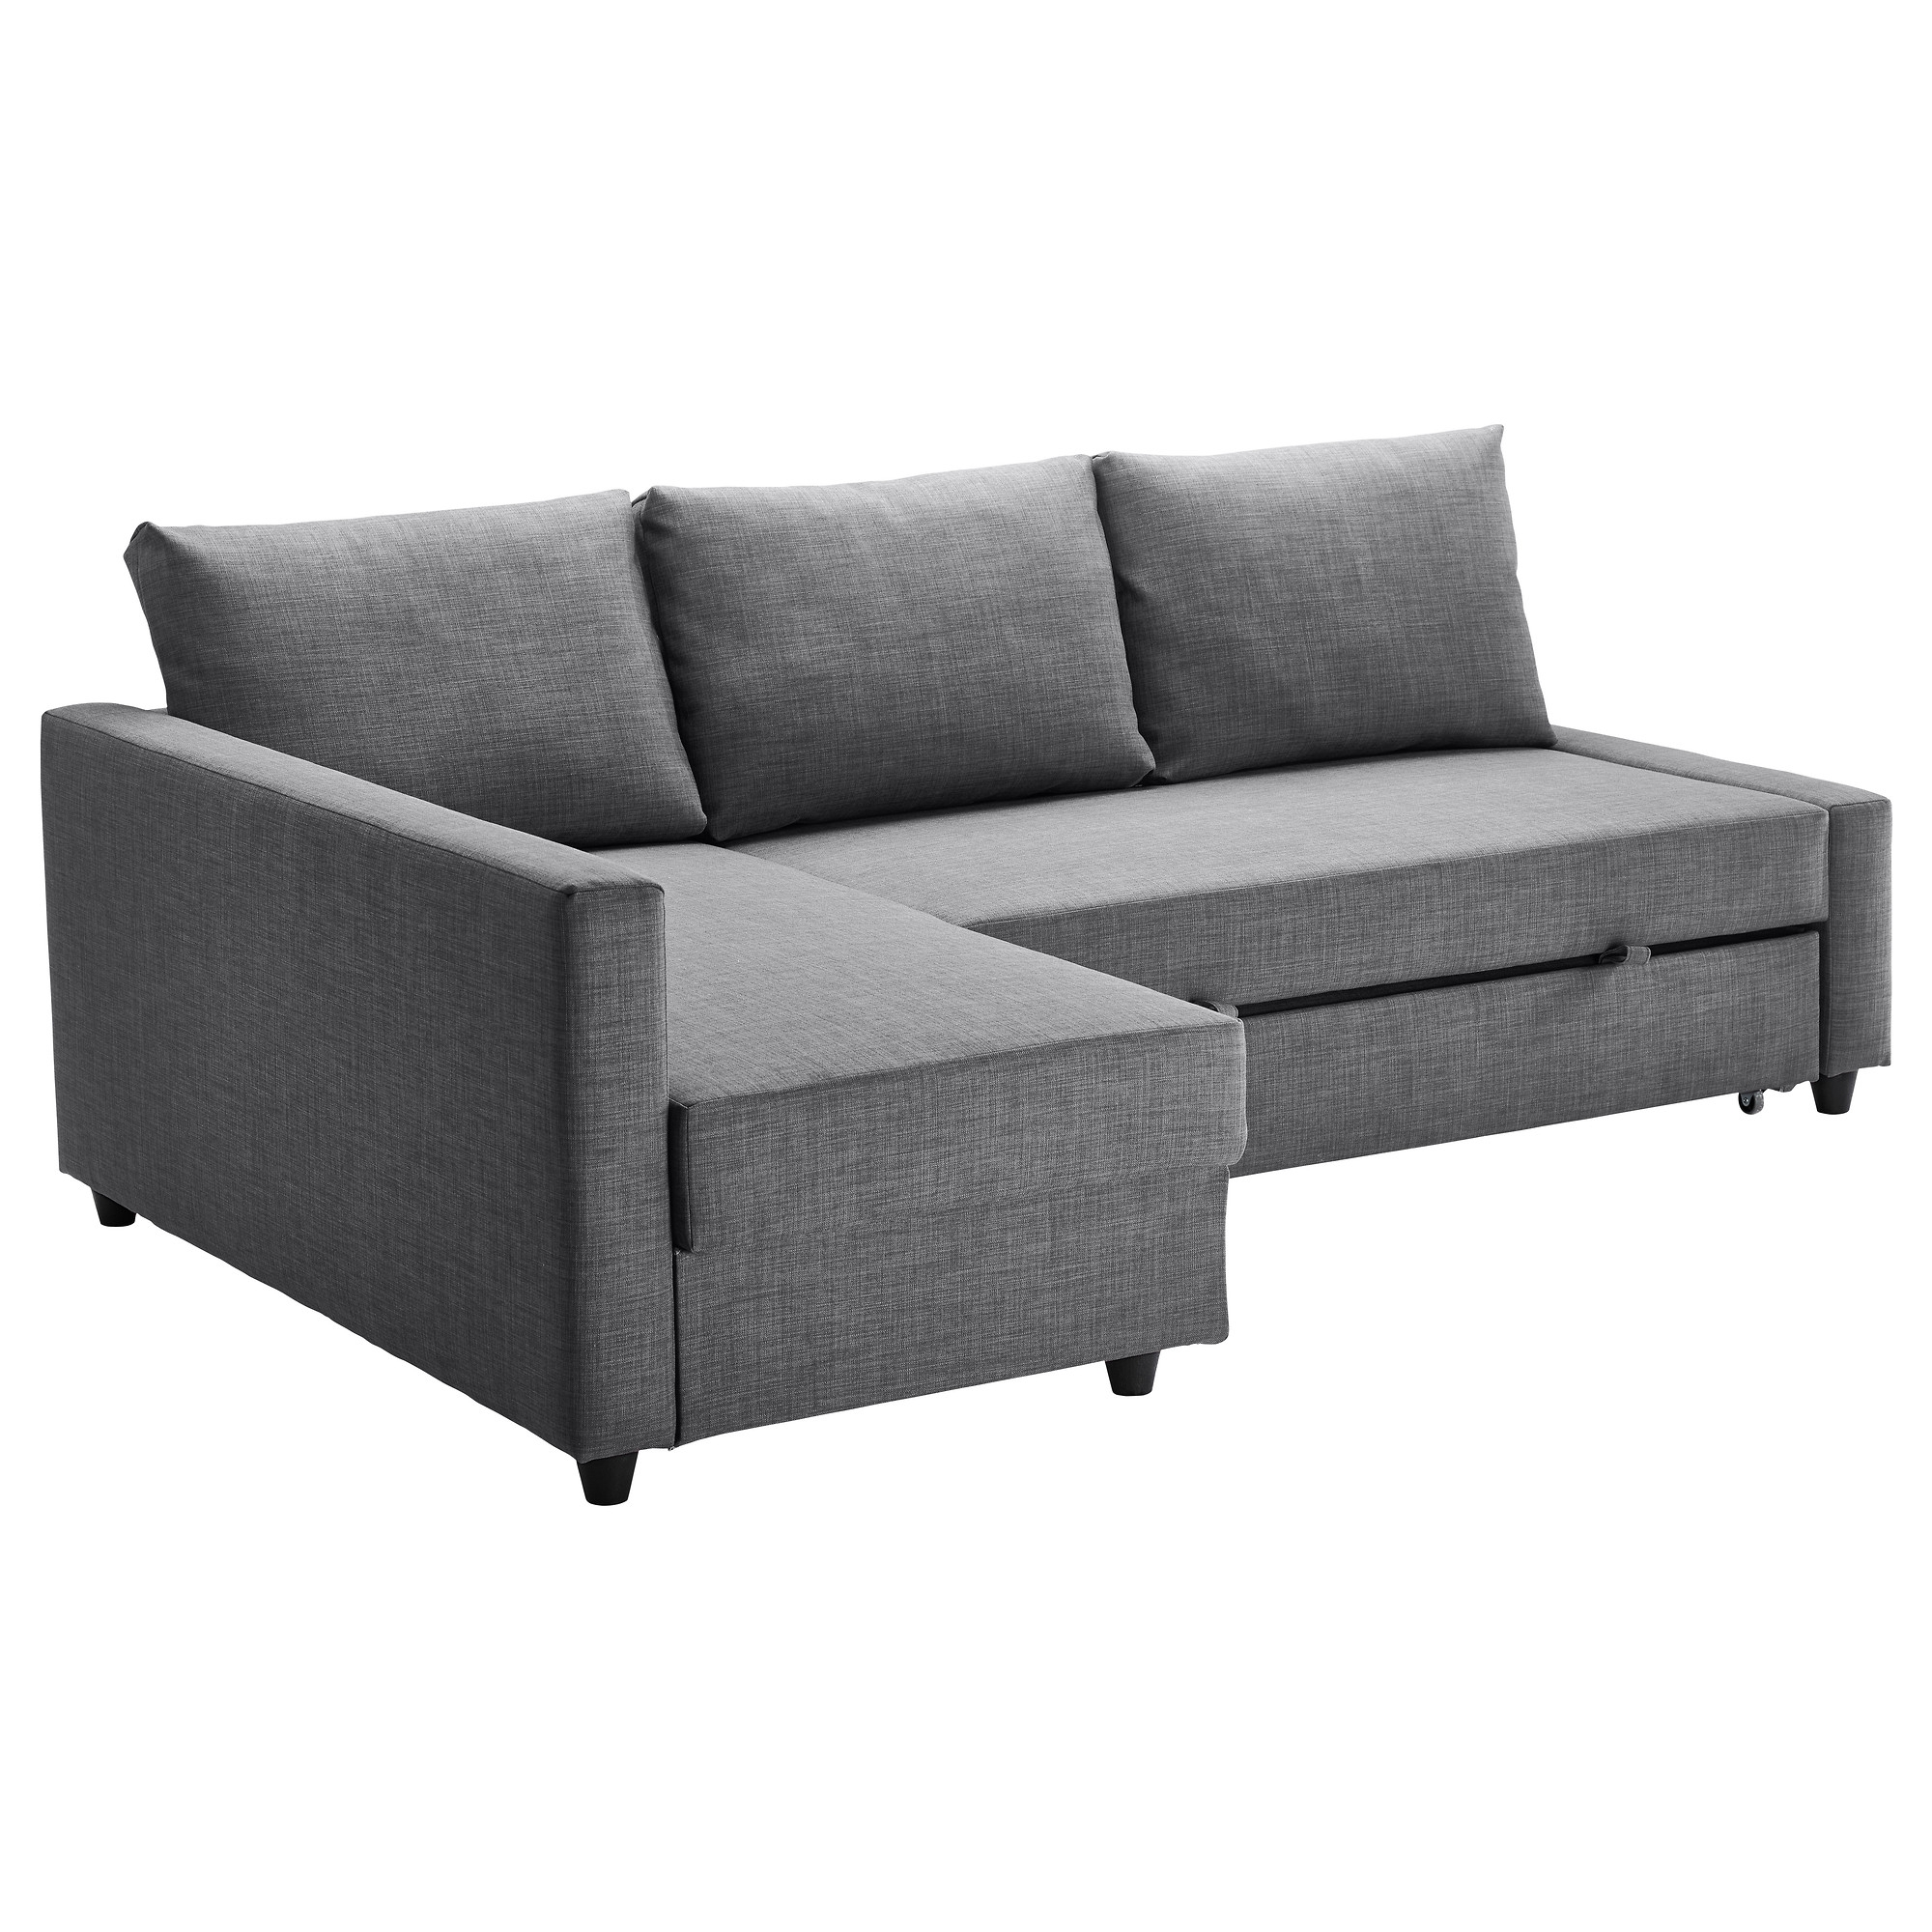 Ikea Chaise Couches with Best and Newest Friheten Corner Sofa-Bed With Storage Skiftebo Dark Grey - Ikea